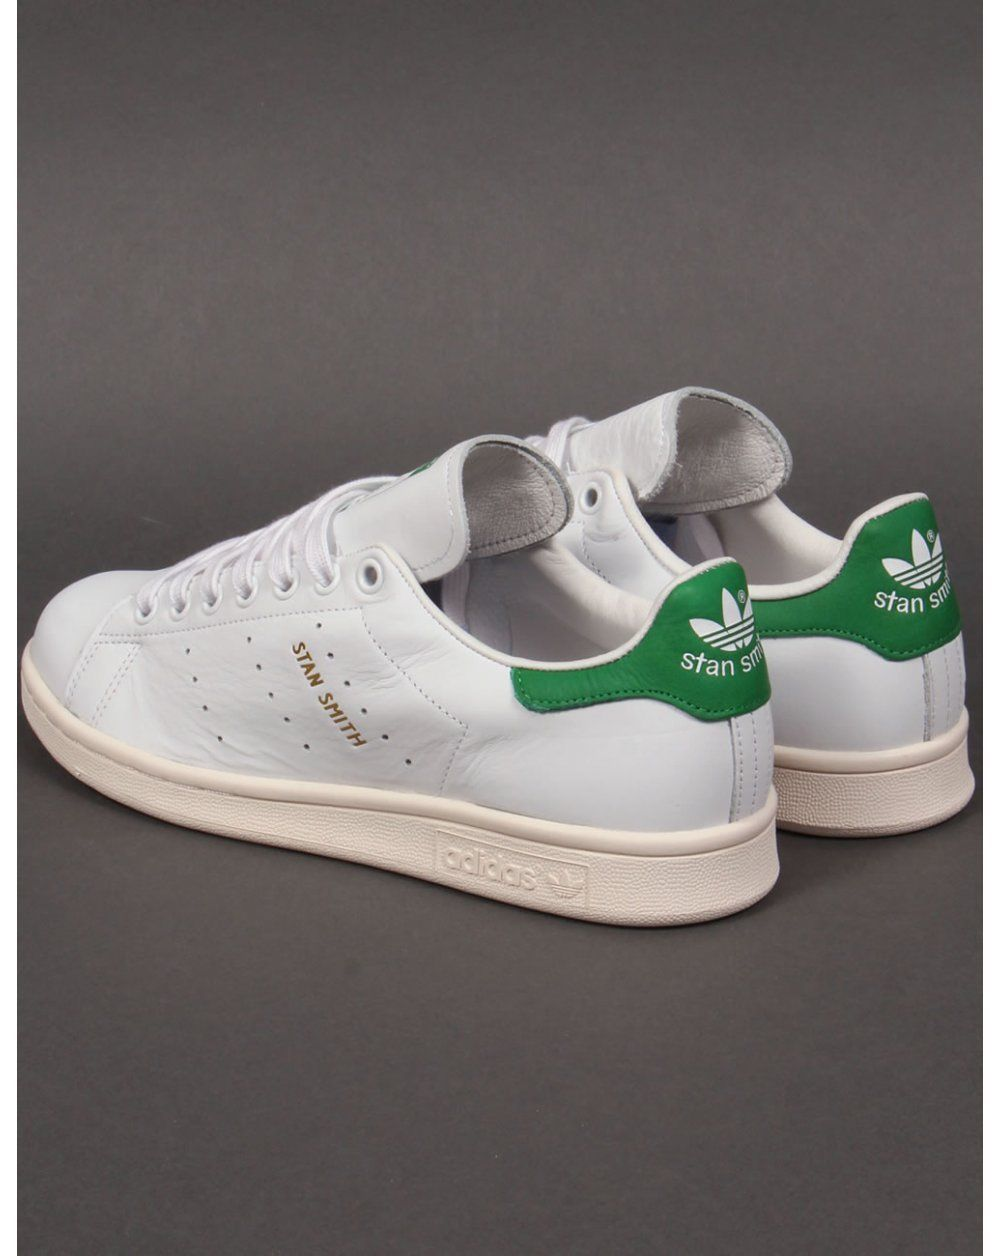 Details about Adidas Originals Stan Smith Trainers in White ...